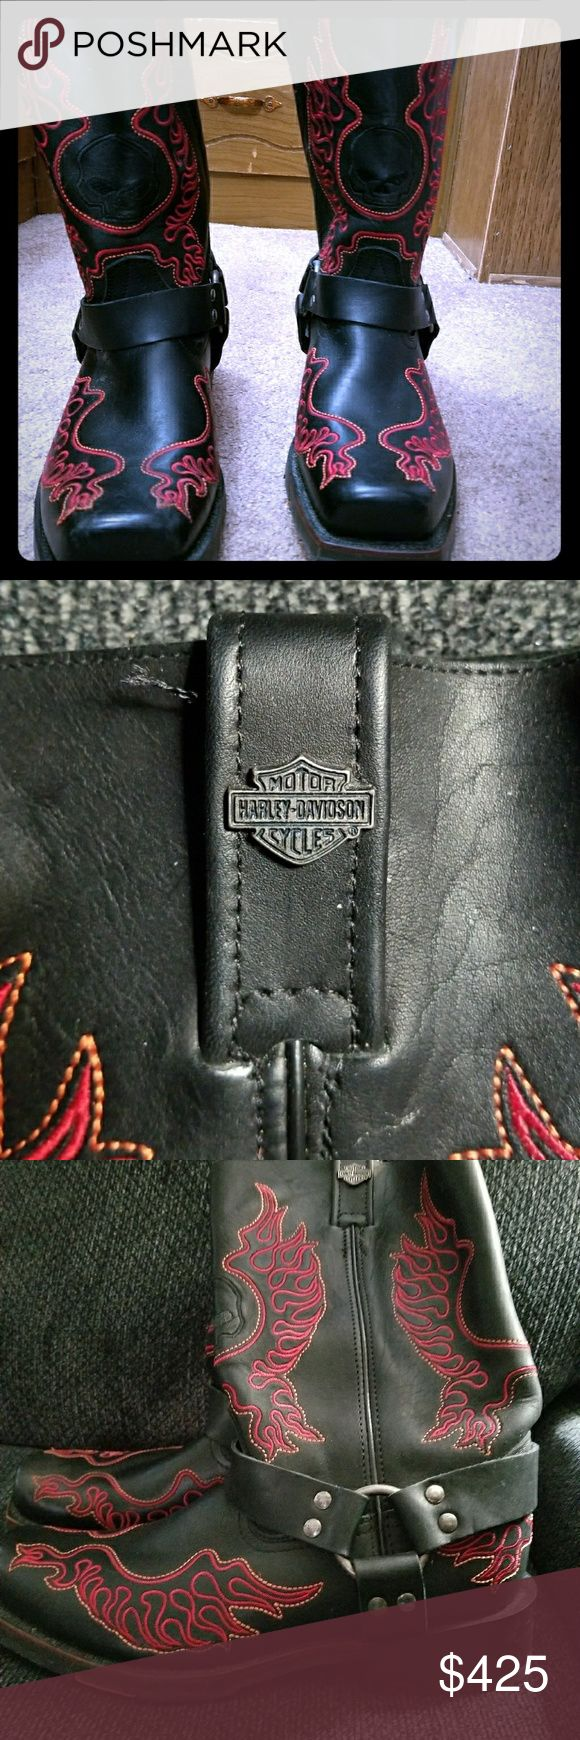 NWOT MENS H.D. BLACK BOOTS NWOT Mens Harley-Davidson Biker Boots in Black with Red Flames. SIZE 10. Square Toe. These boots have not been worn and ARE SOLD AS IS.  🚫 Trades or Holds or Low Bids Accepted on this Item. Harley-Davidson Shoes Boots #harleydavidsonboots